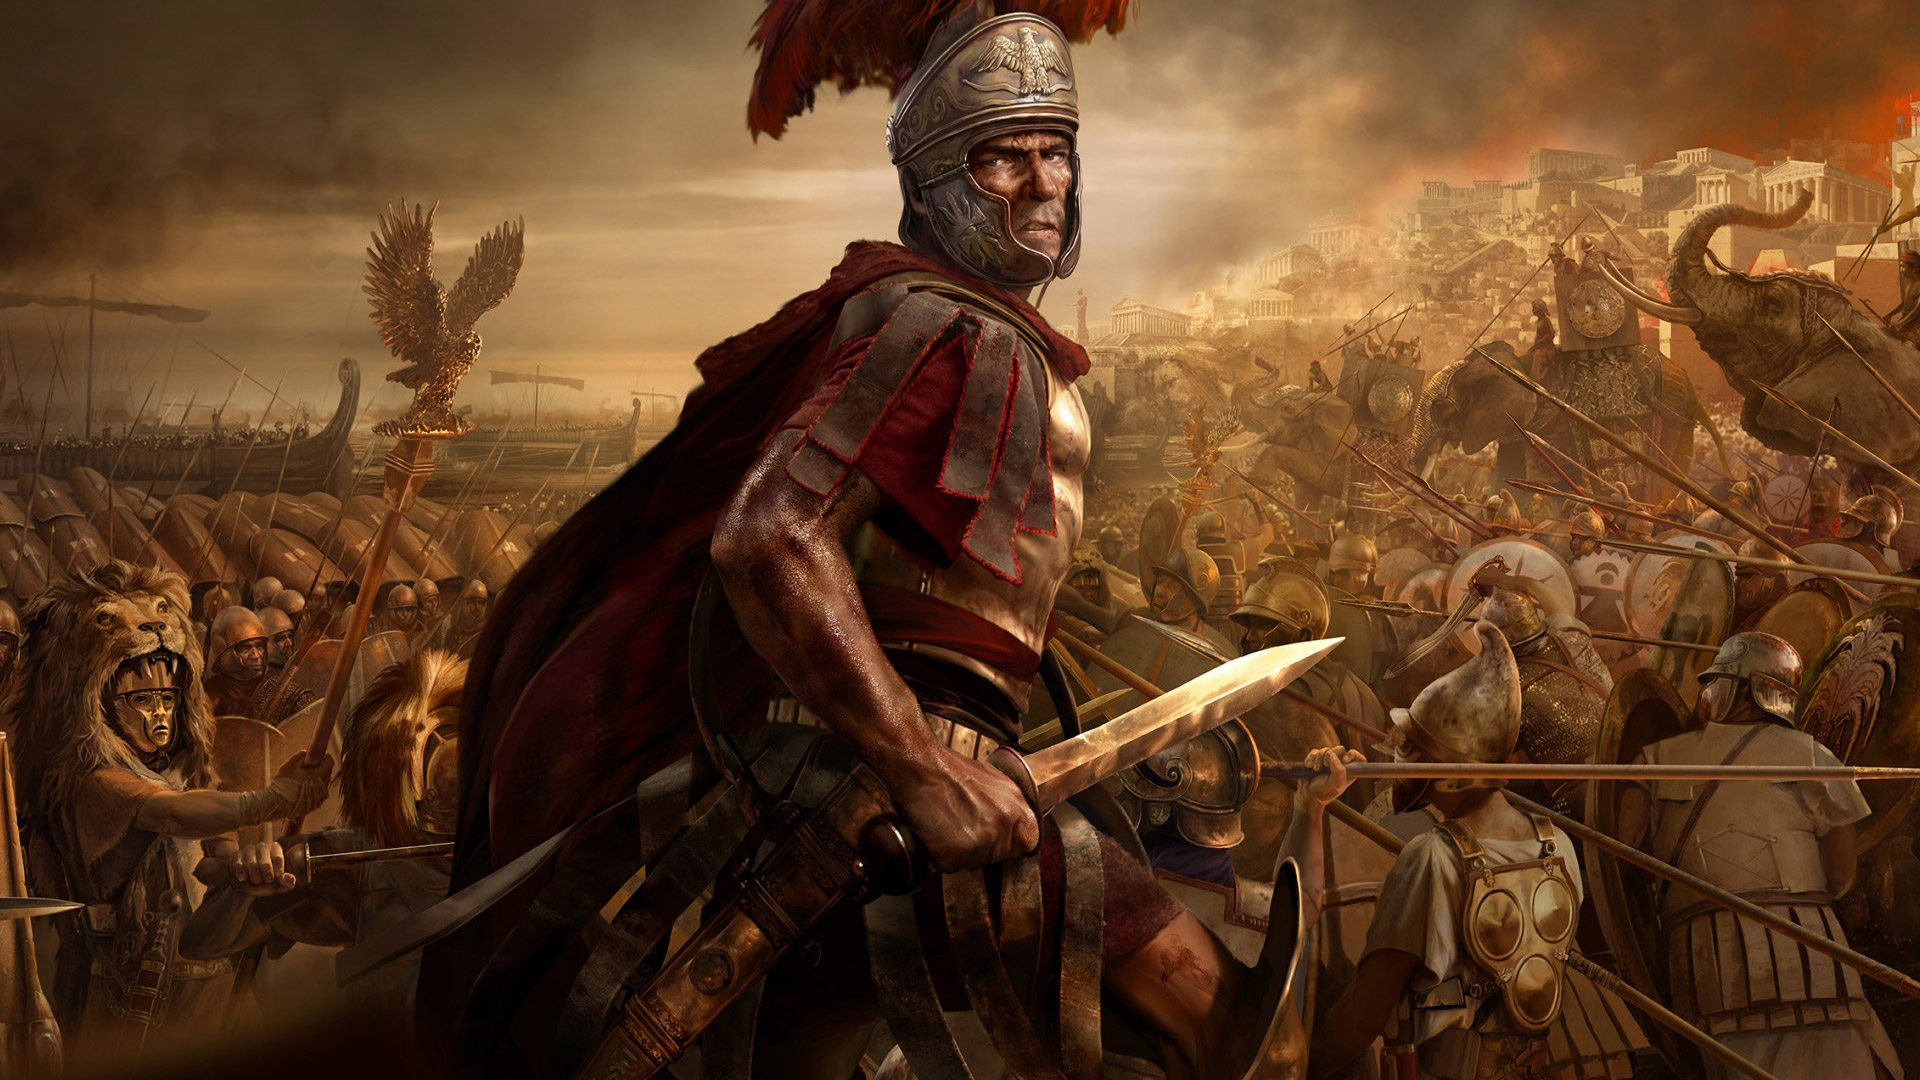 Free Total War: Rome II Wallpaper in 1920x1080